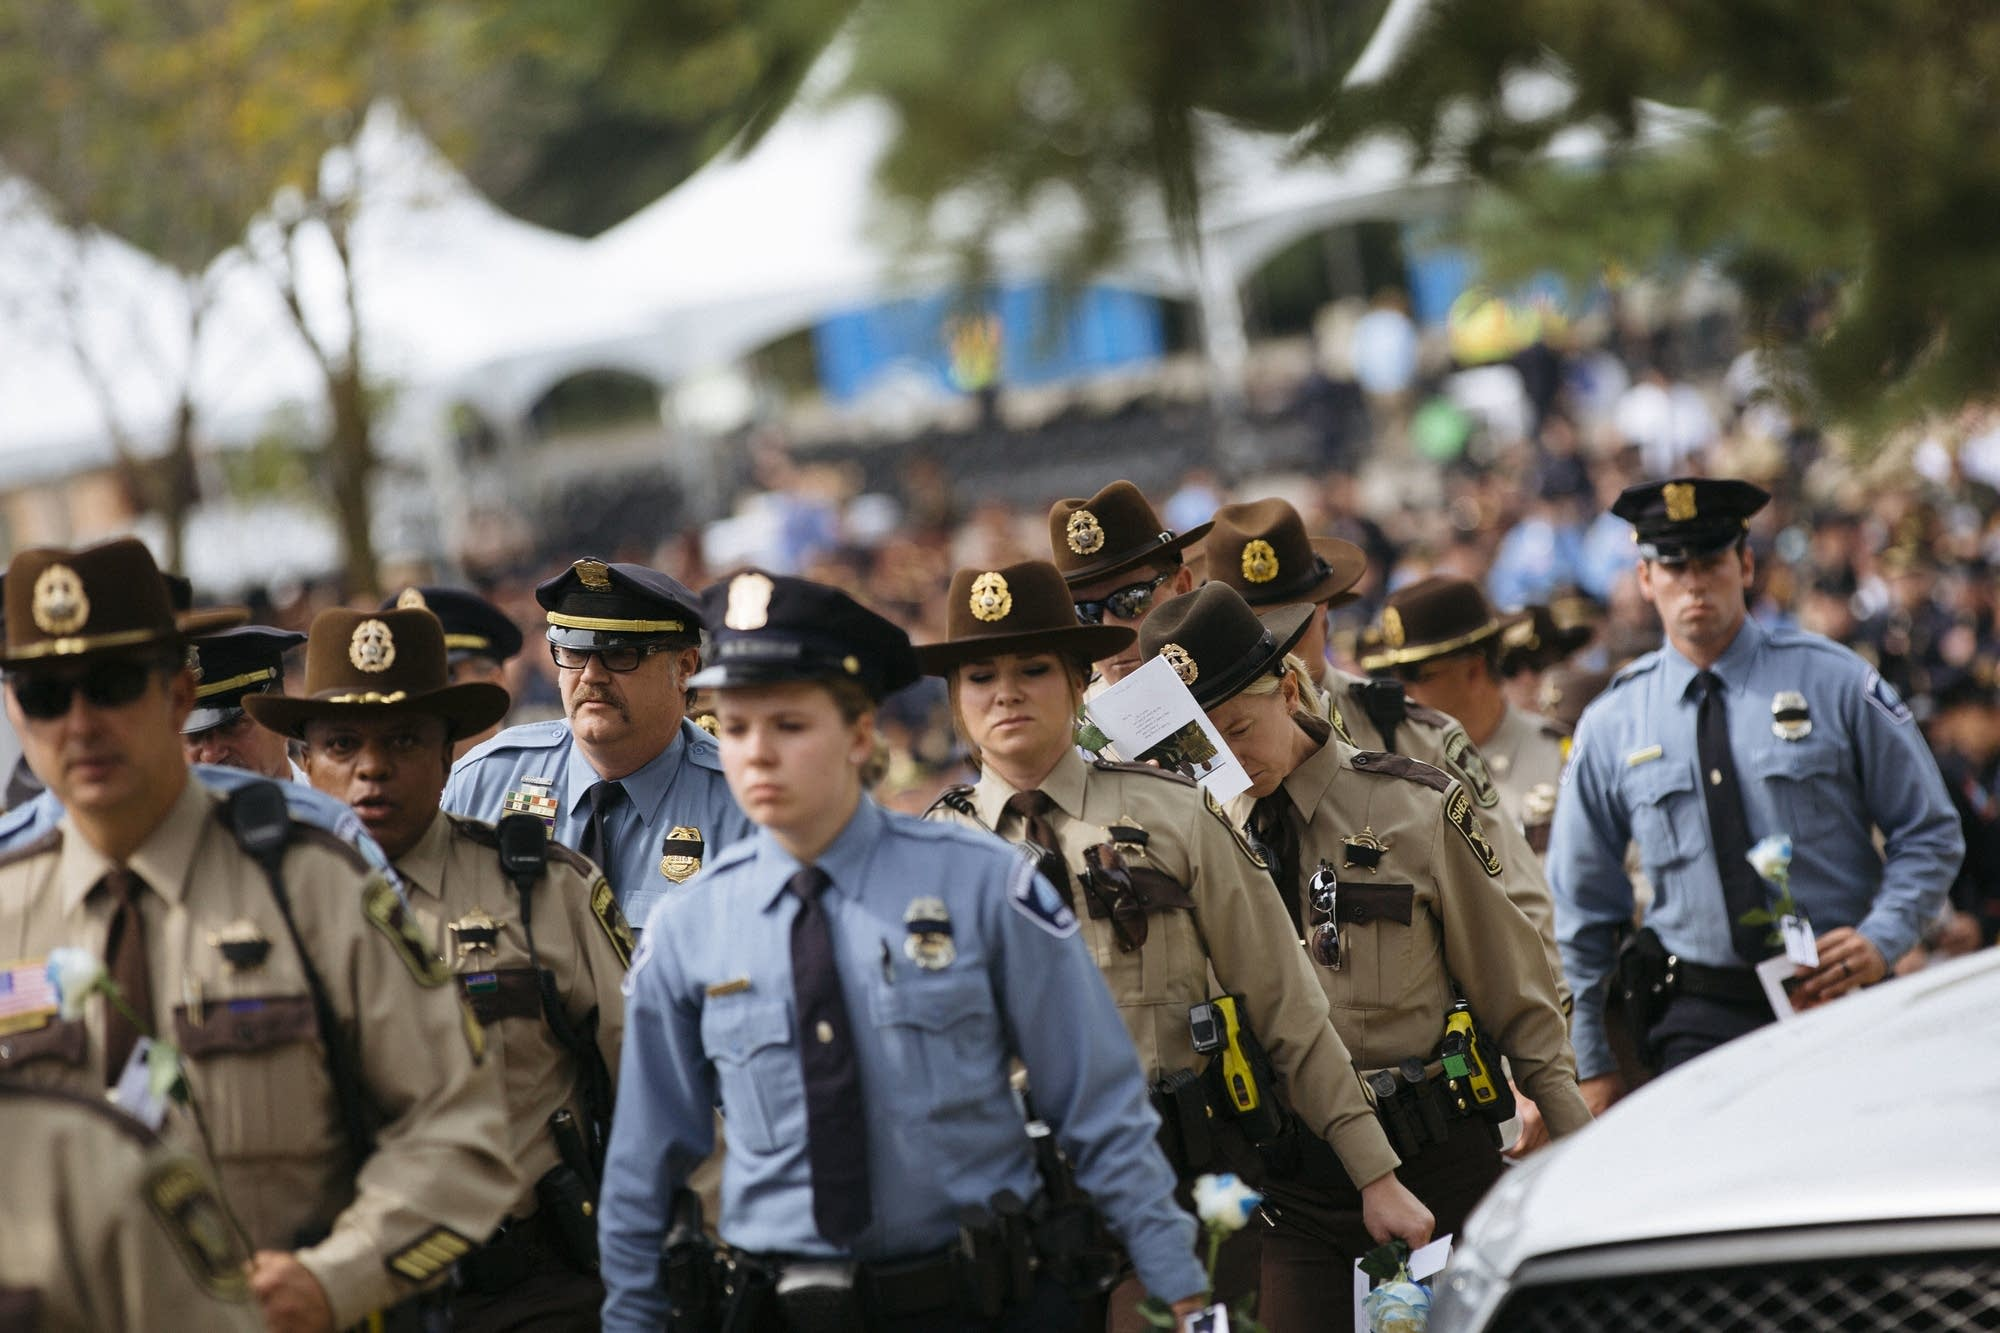 Police officers and state troopers leave the funeral service.